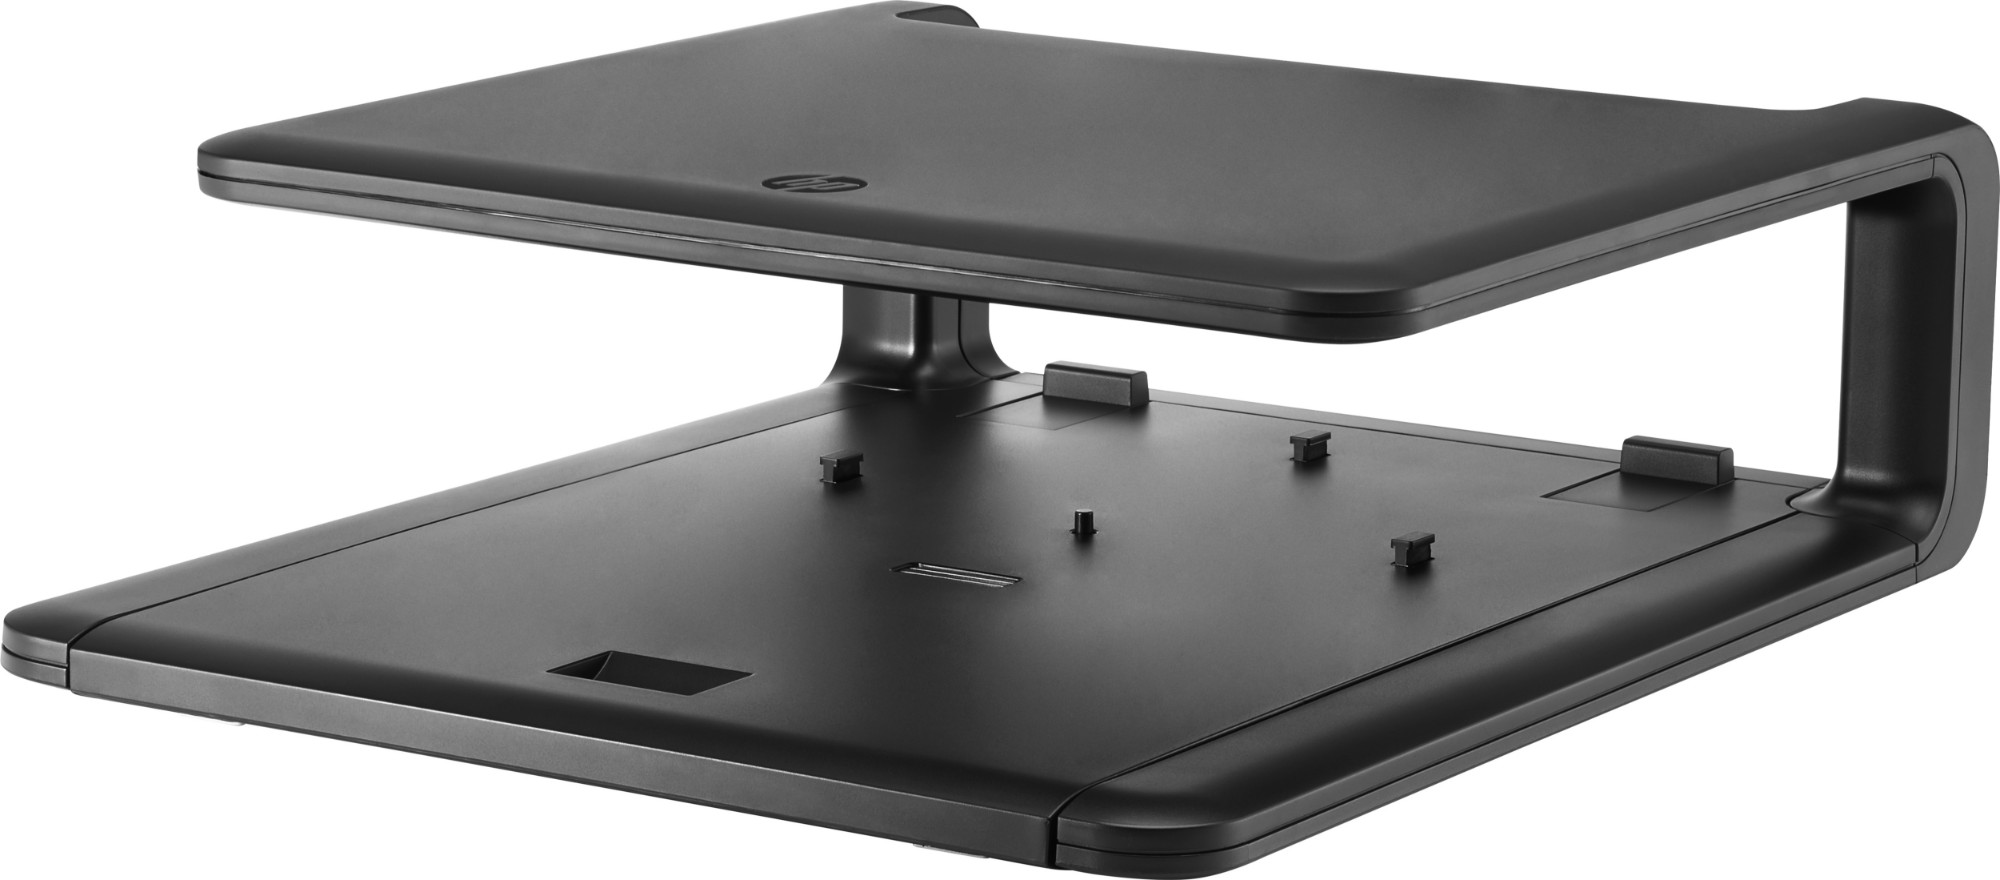 Monitor Stand & Notebook Dock (M9X76AA)